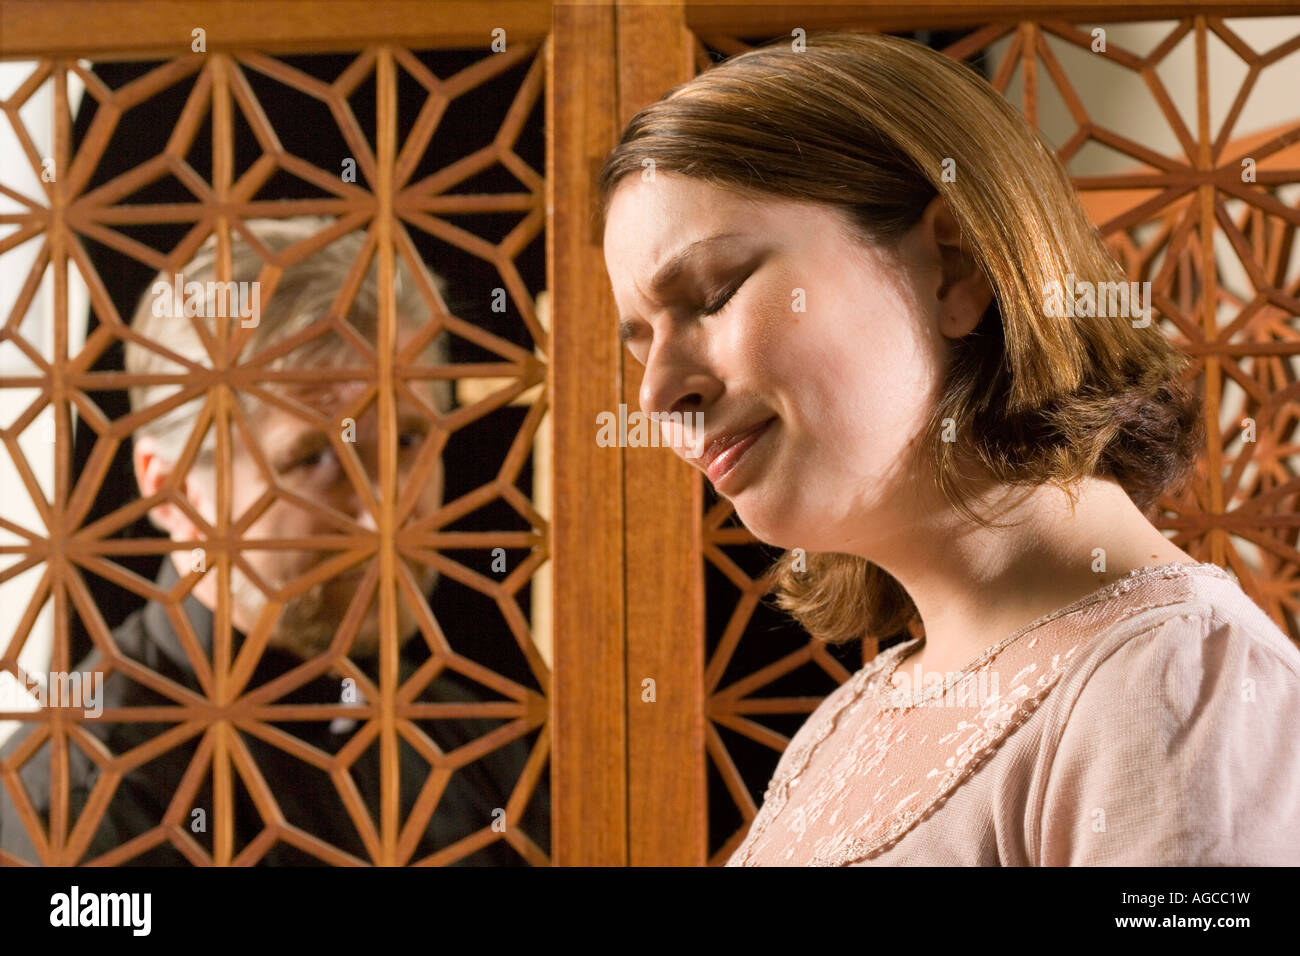 Woman talks to priest during confession. - Stock Image